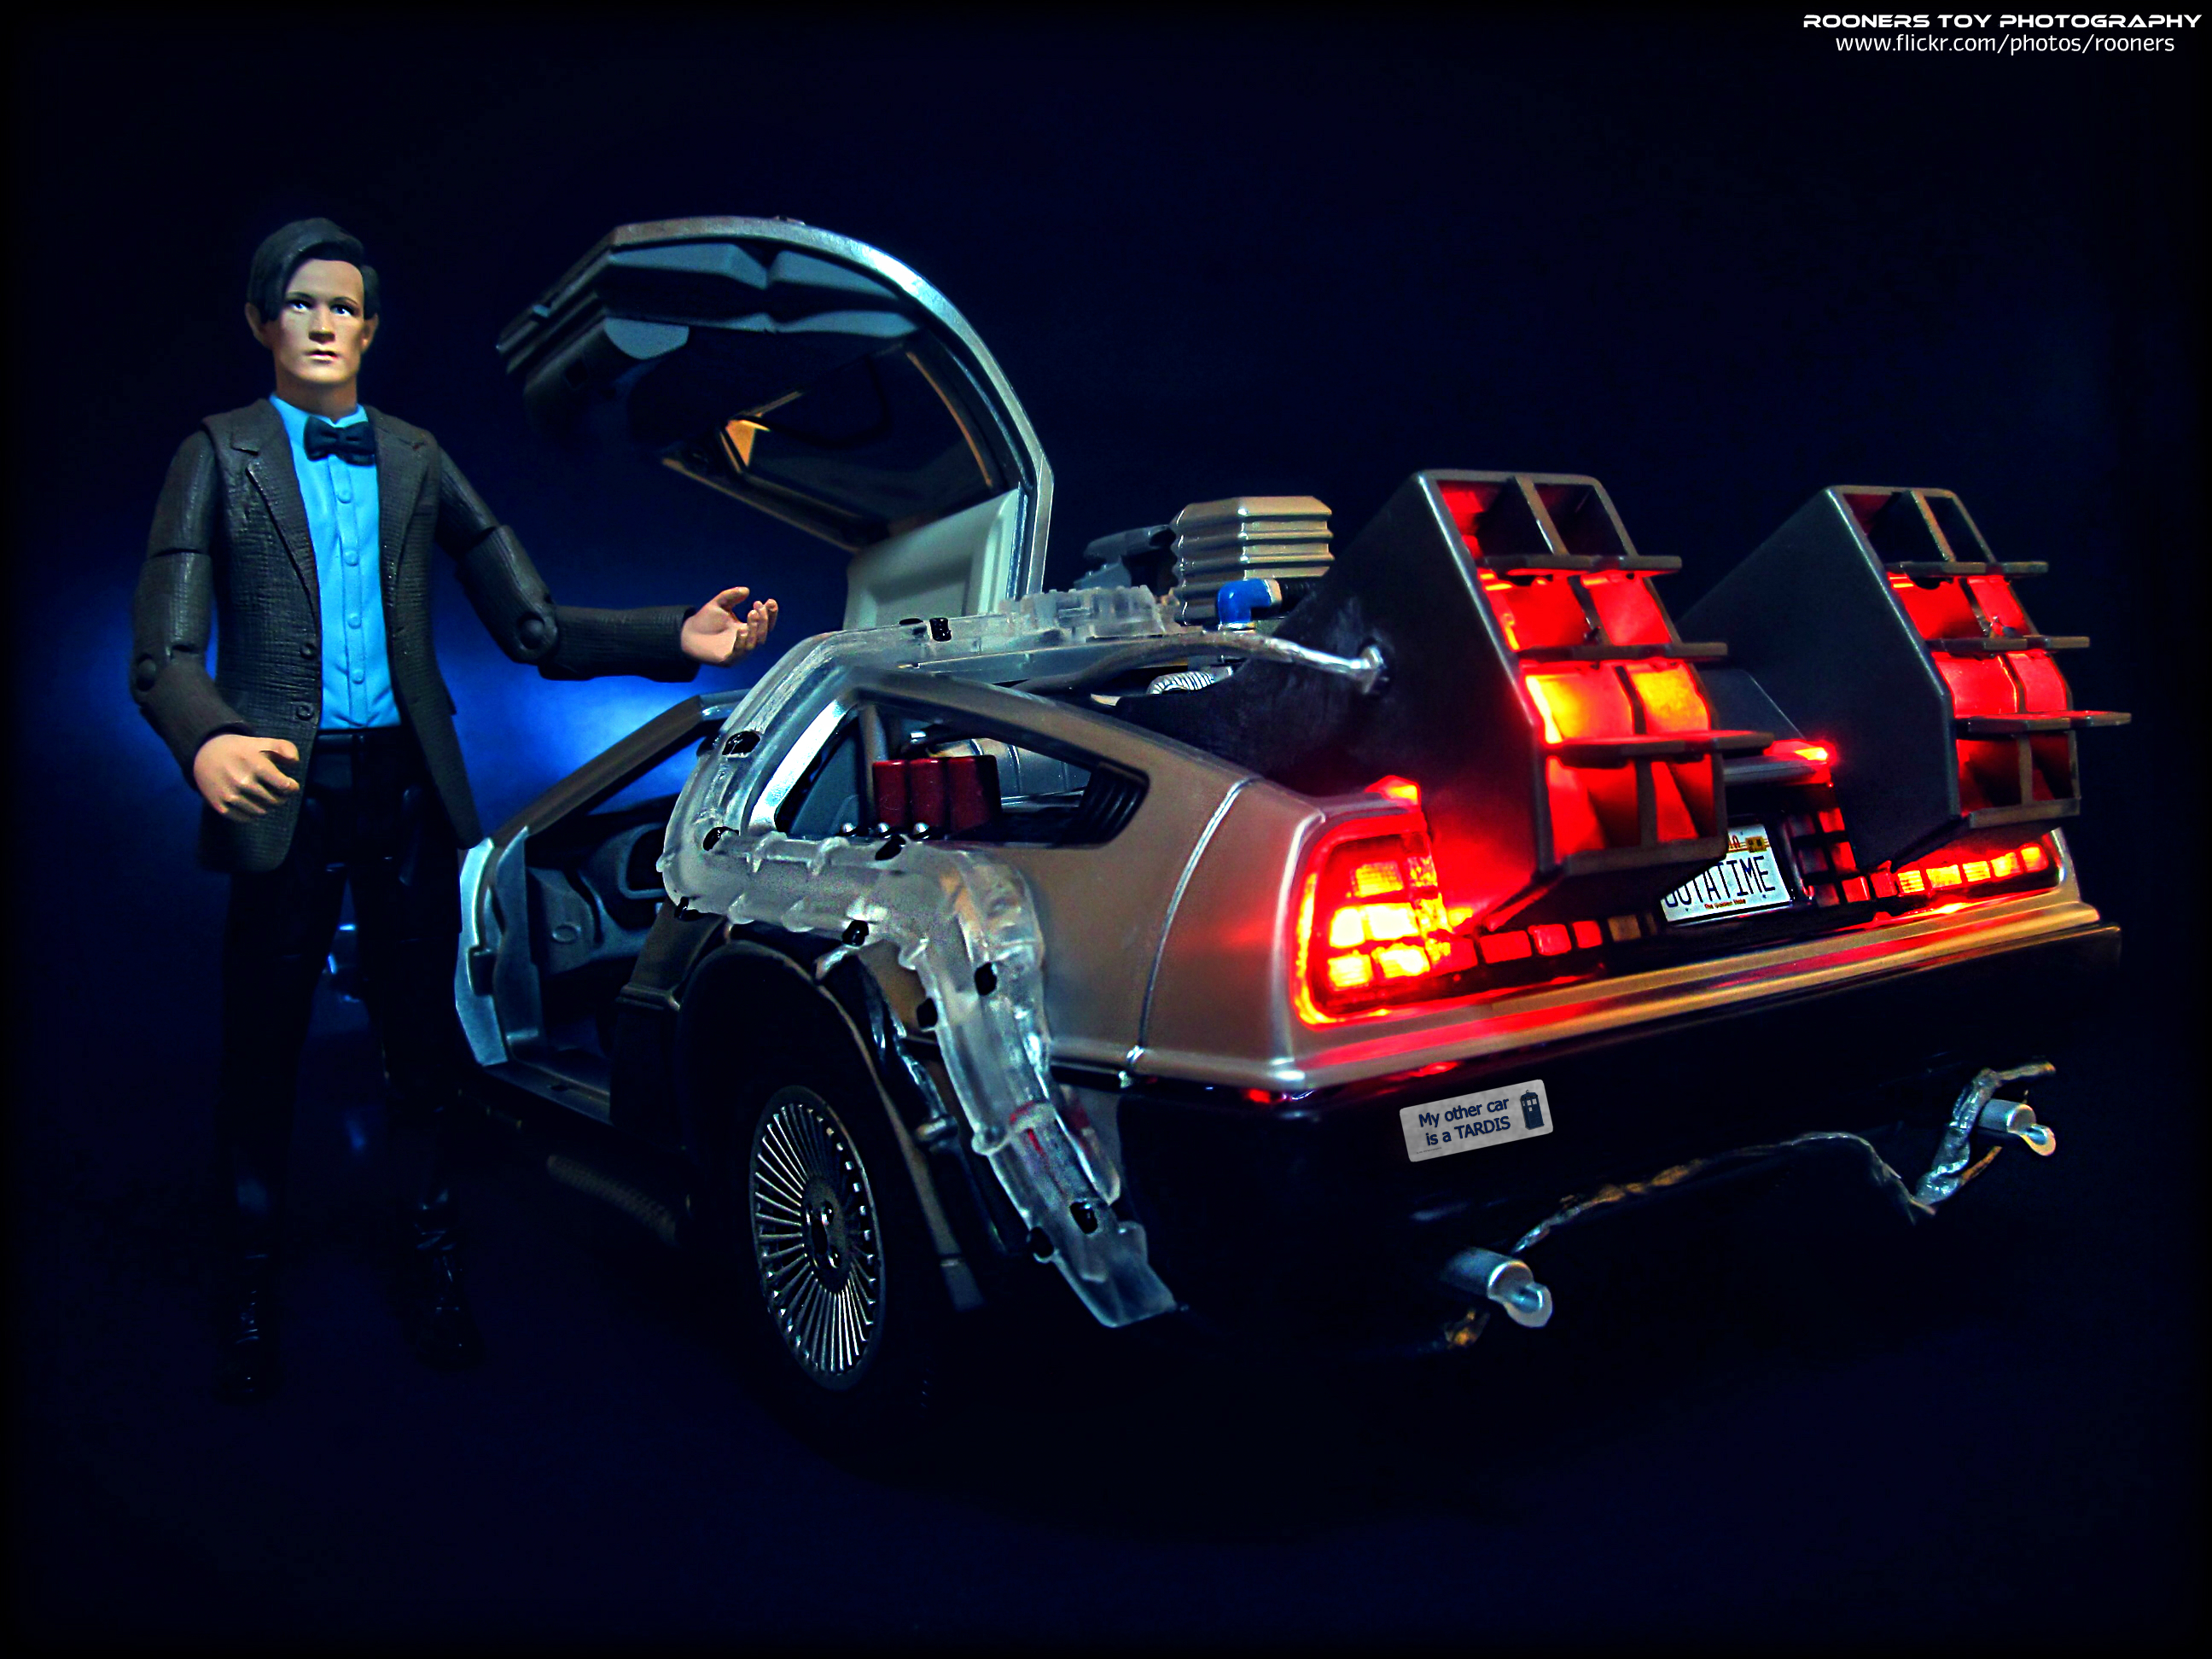 The Doctor has a New Ride by Rooners Toy Photography (CC BY-SA 2.0) at Flickr.